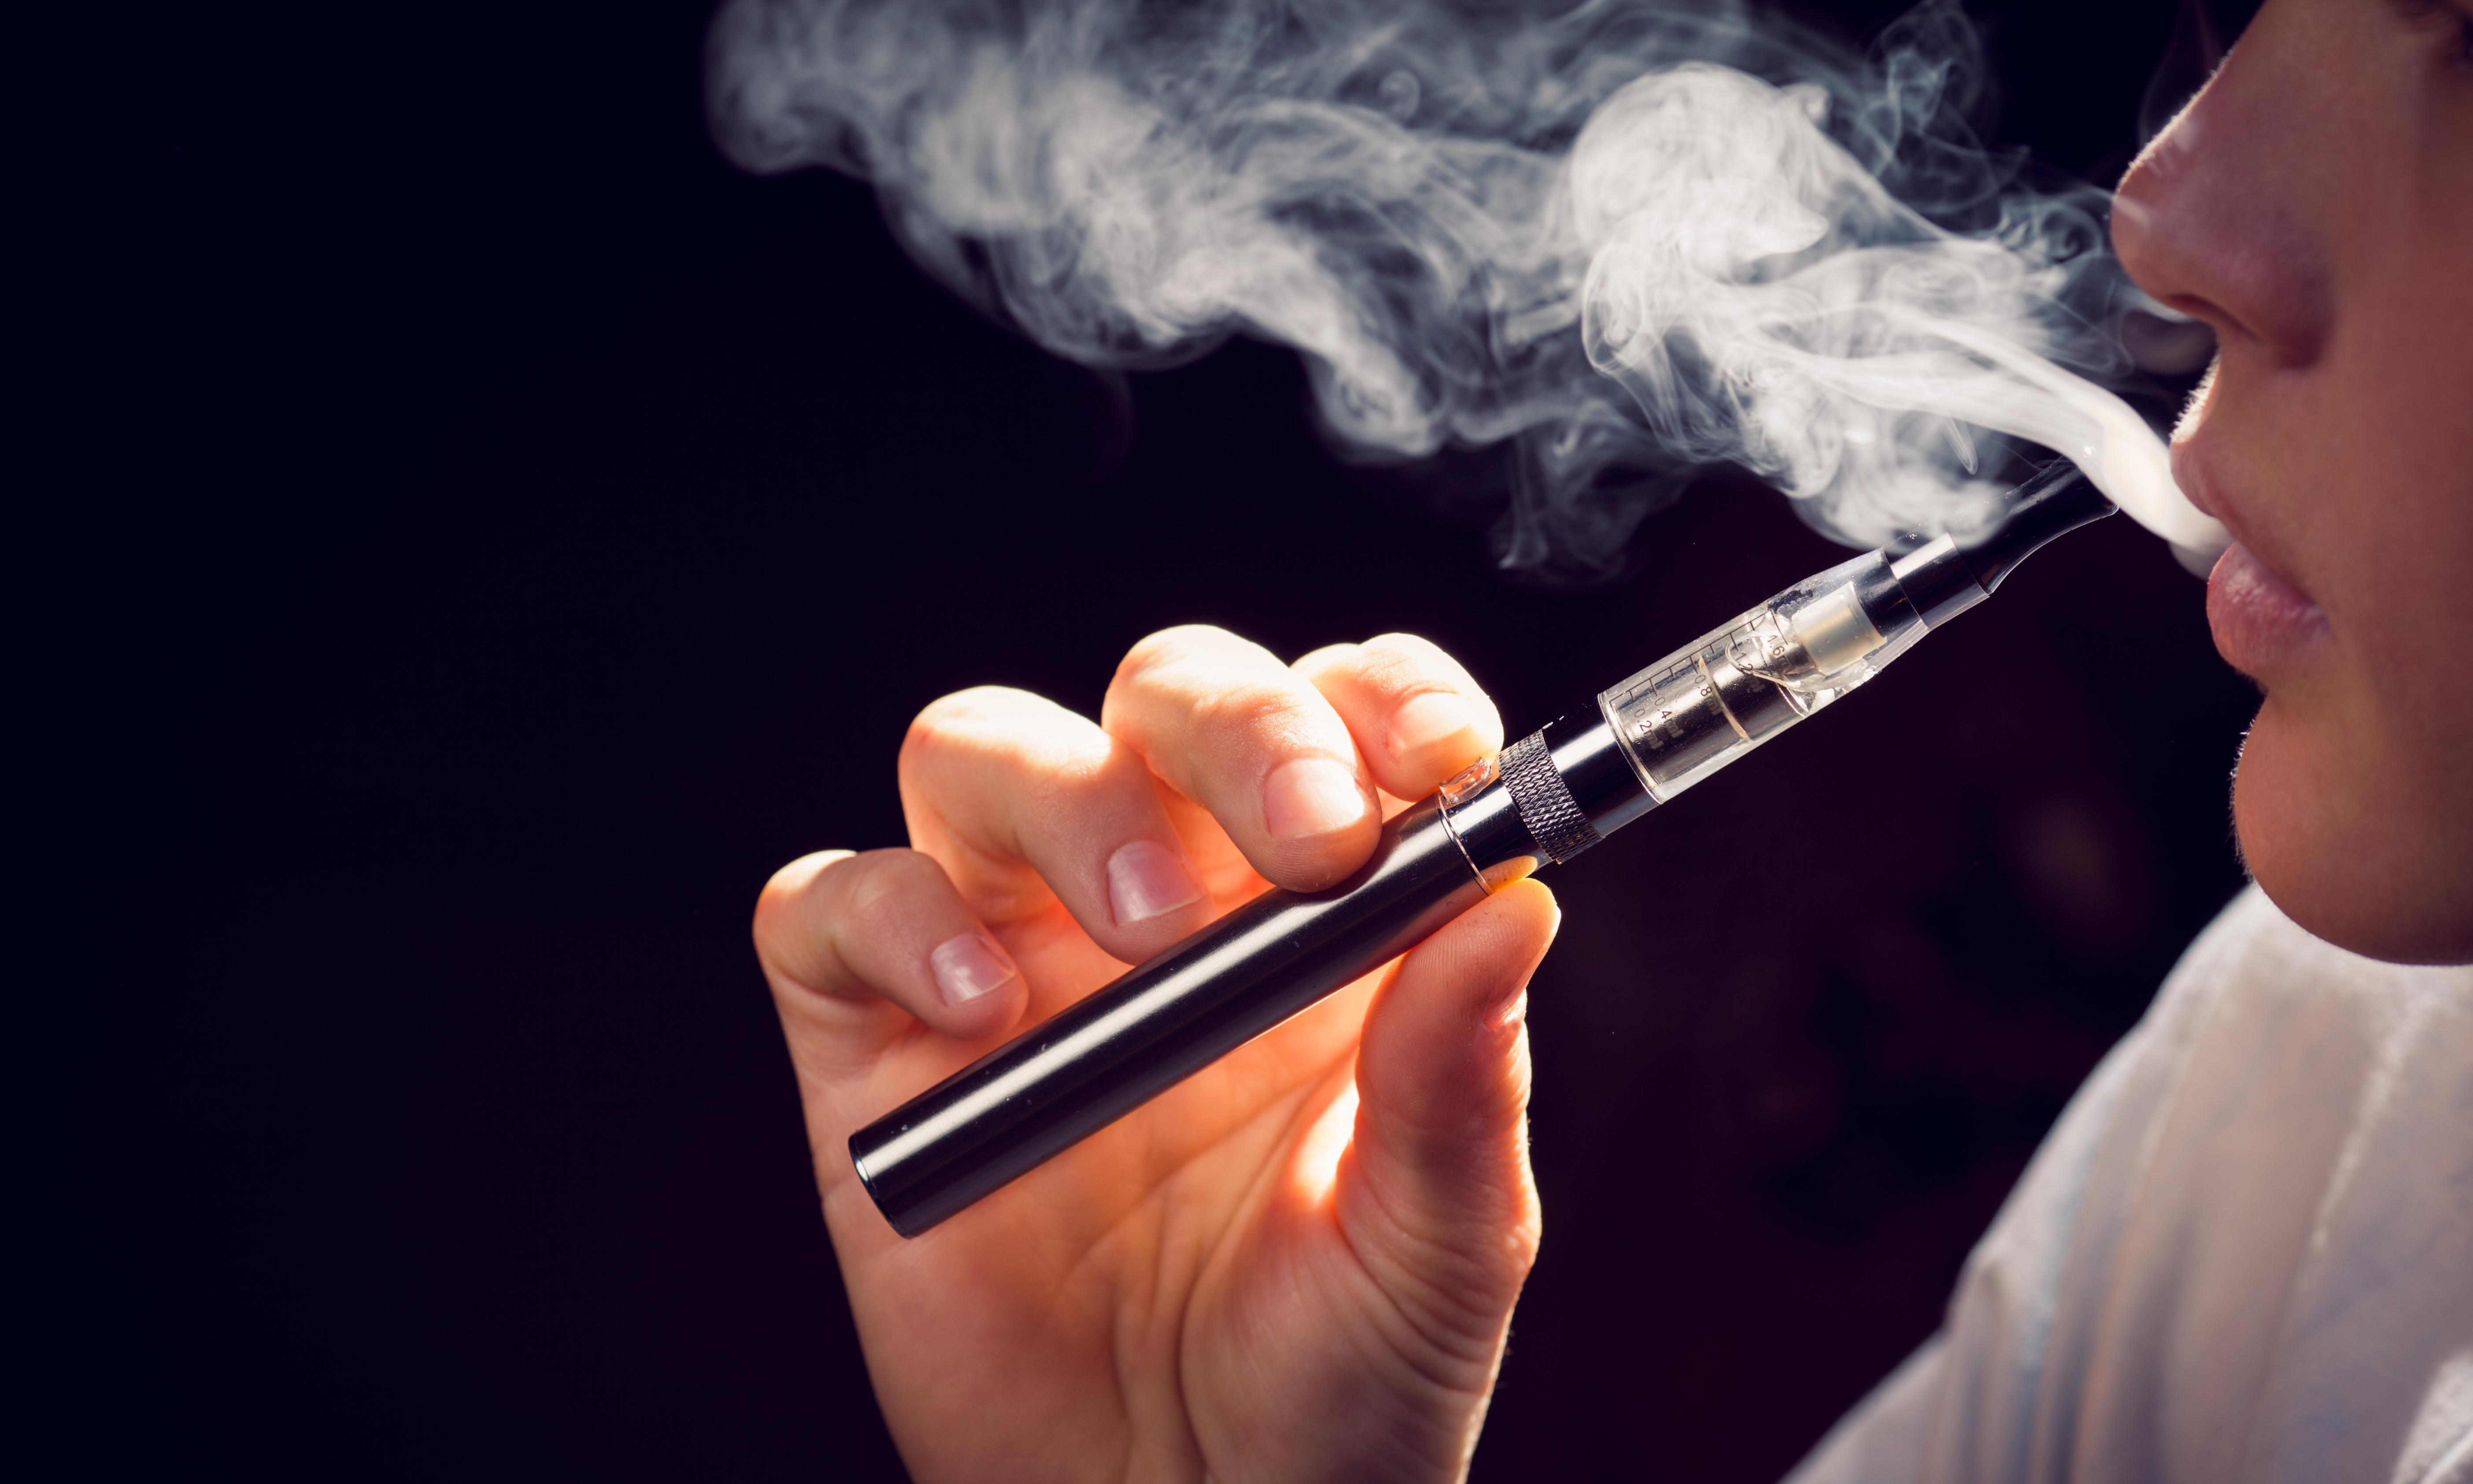 After six deaths in the US and bans around the world – is vaping safe?